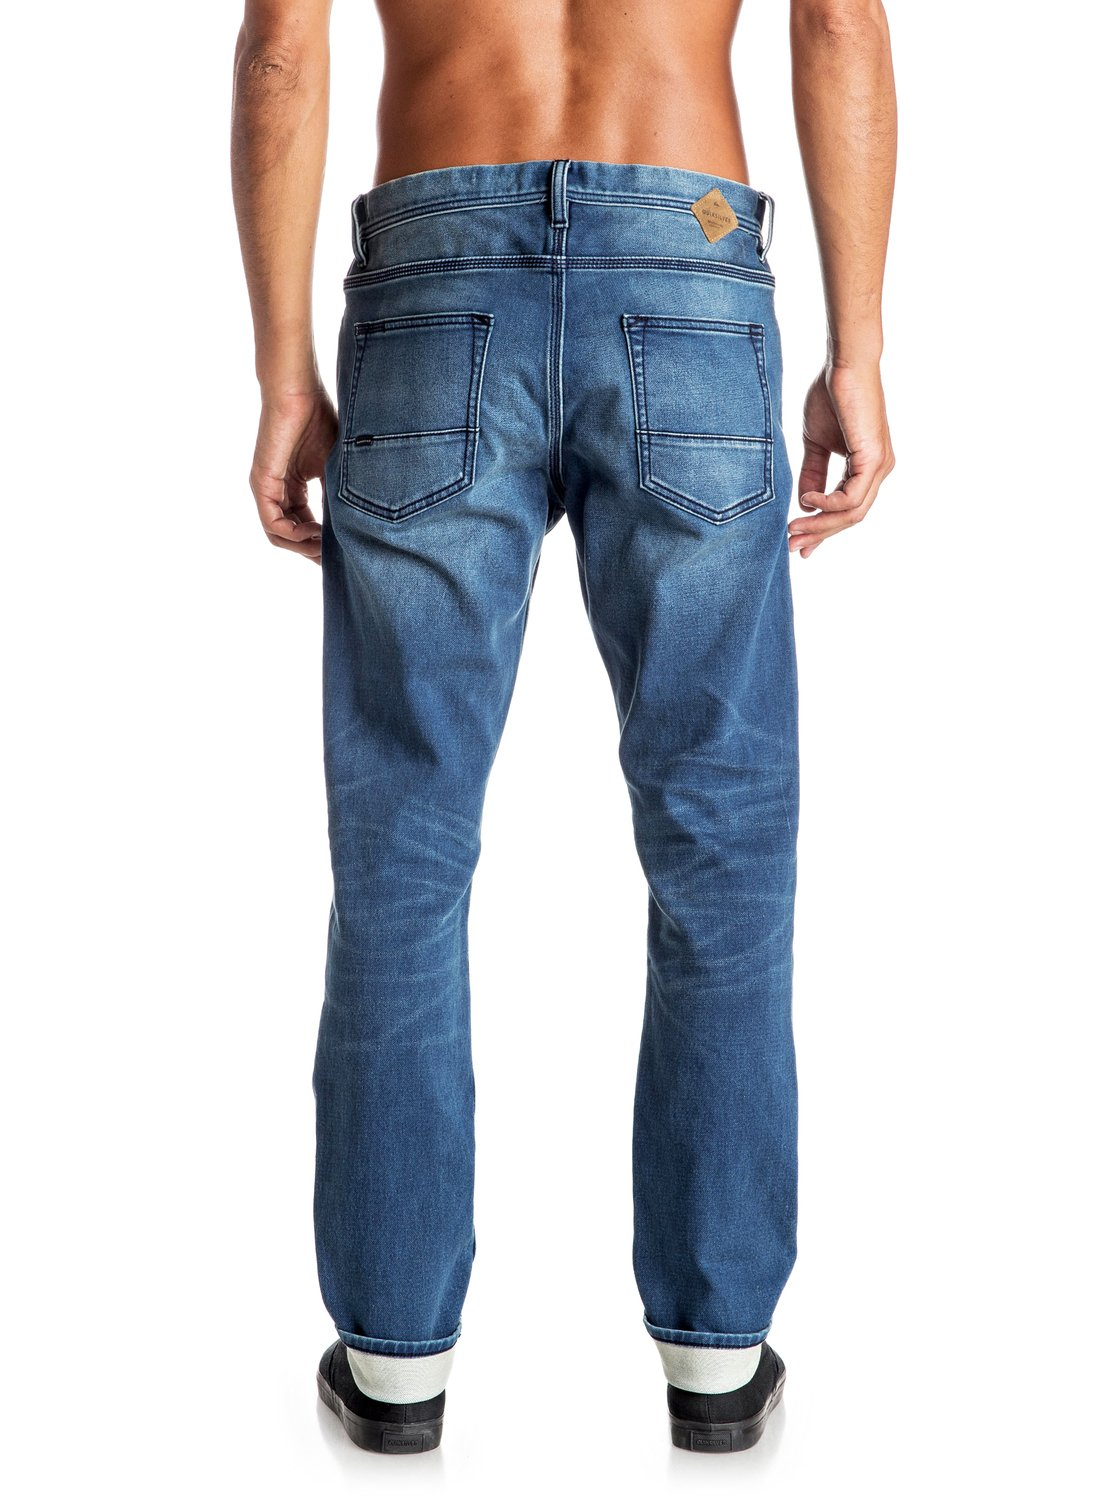 FREE SHIPPING AVAILABLE! Shop neo-craft.gq and save on Slim Fit Jeans.